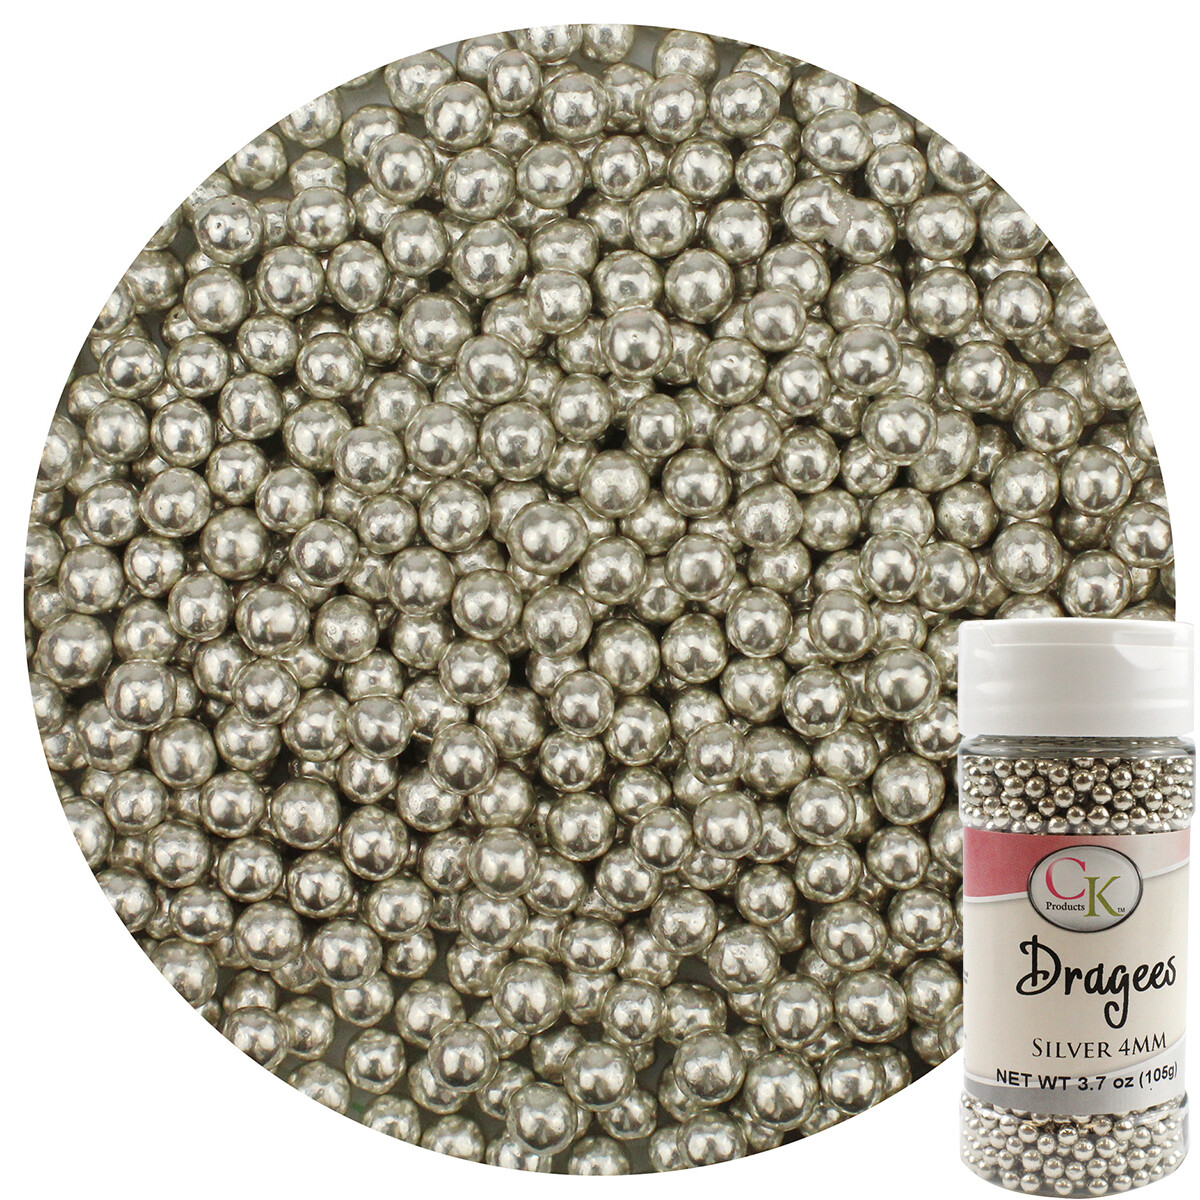 Silver 4mm Dragee